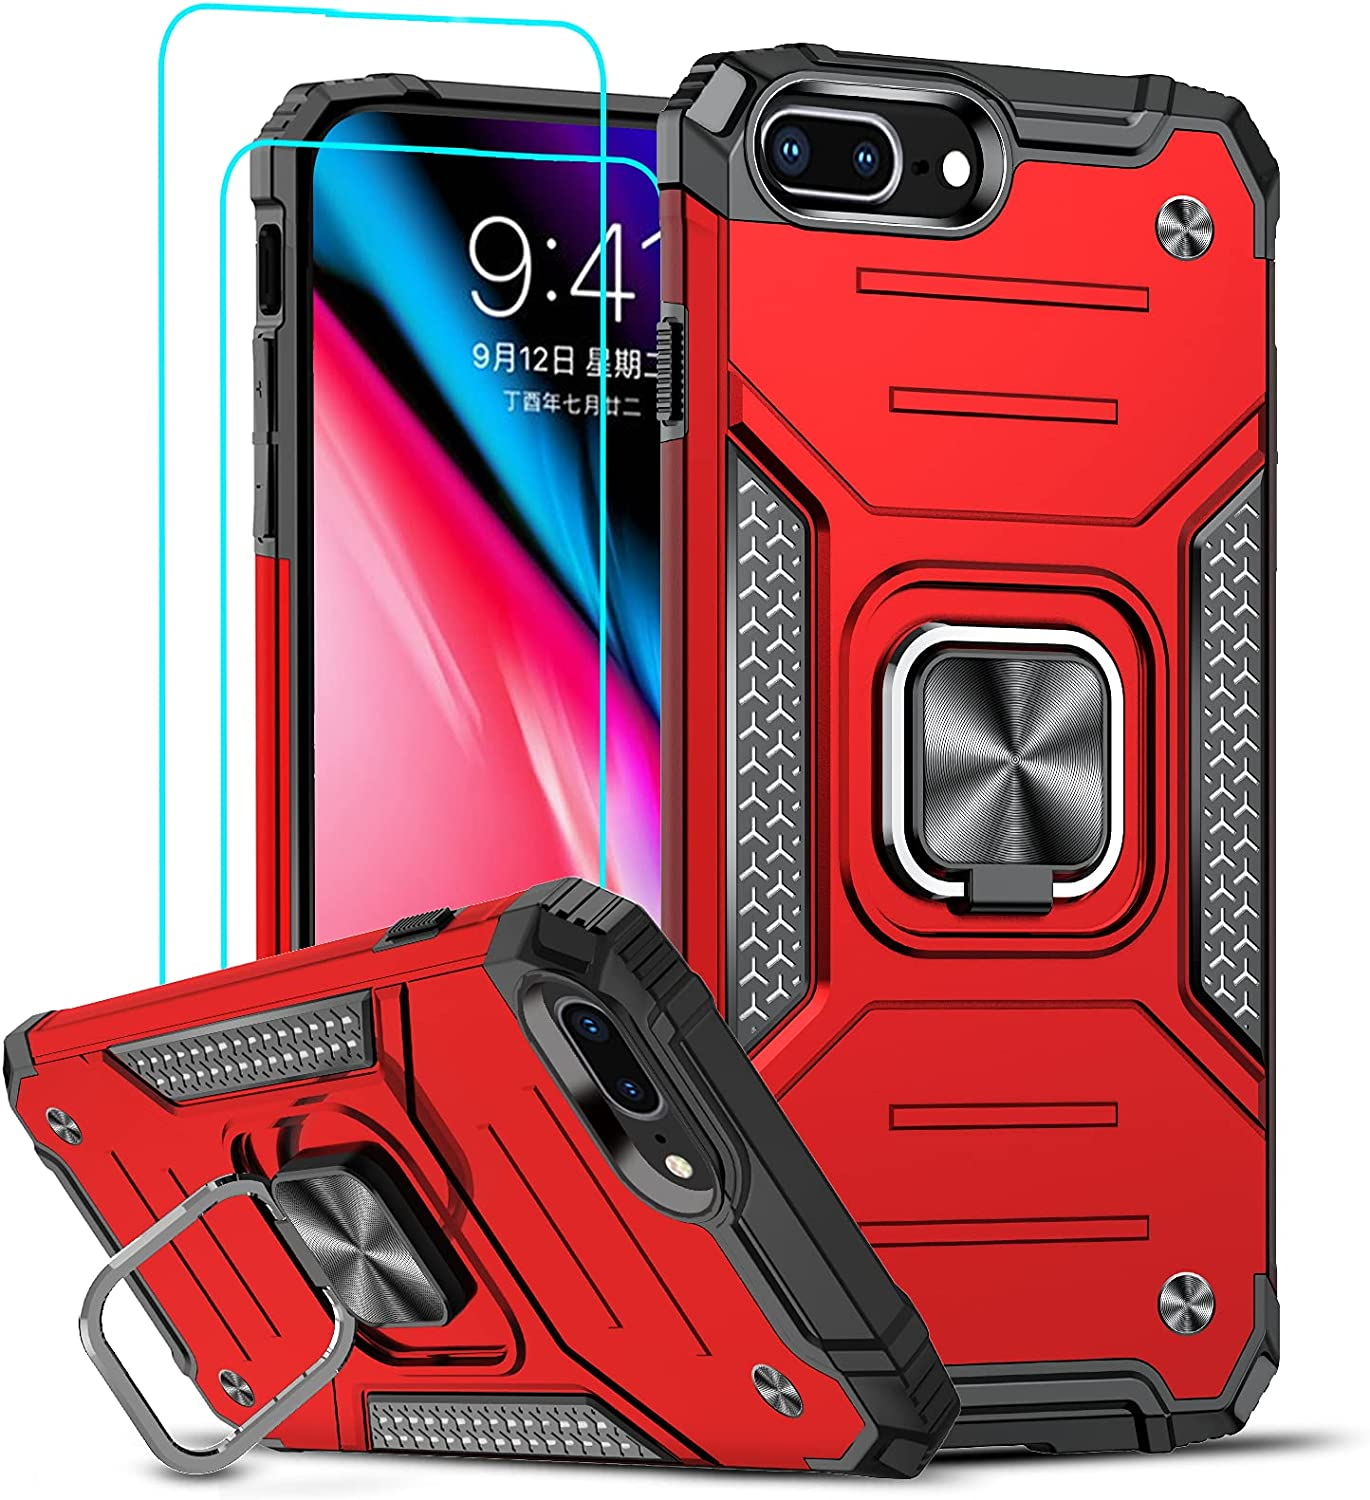 LeYi Compatible with iPhone 8 Plus Case, iPhone 7 Plus Case with 2 Tempered Glass Screen Protector, Shockproof [Military-Grade] Phone Case with Ring Kickstand for iPhone 8 Plus/7 Plus/6s Plus, Red